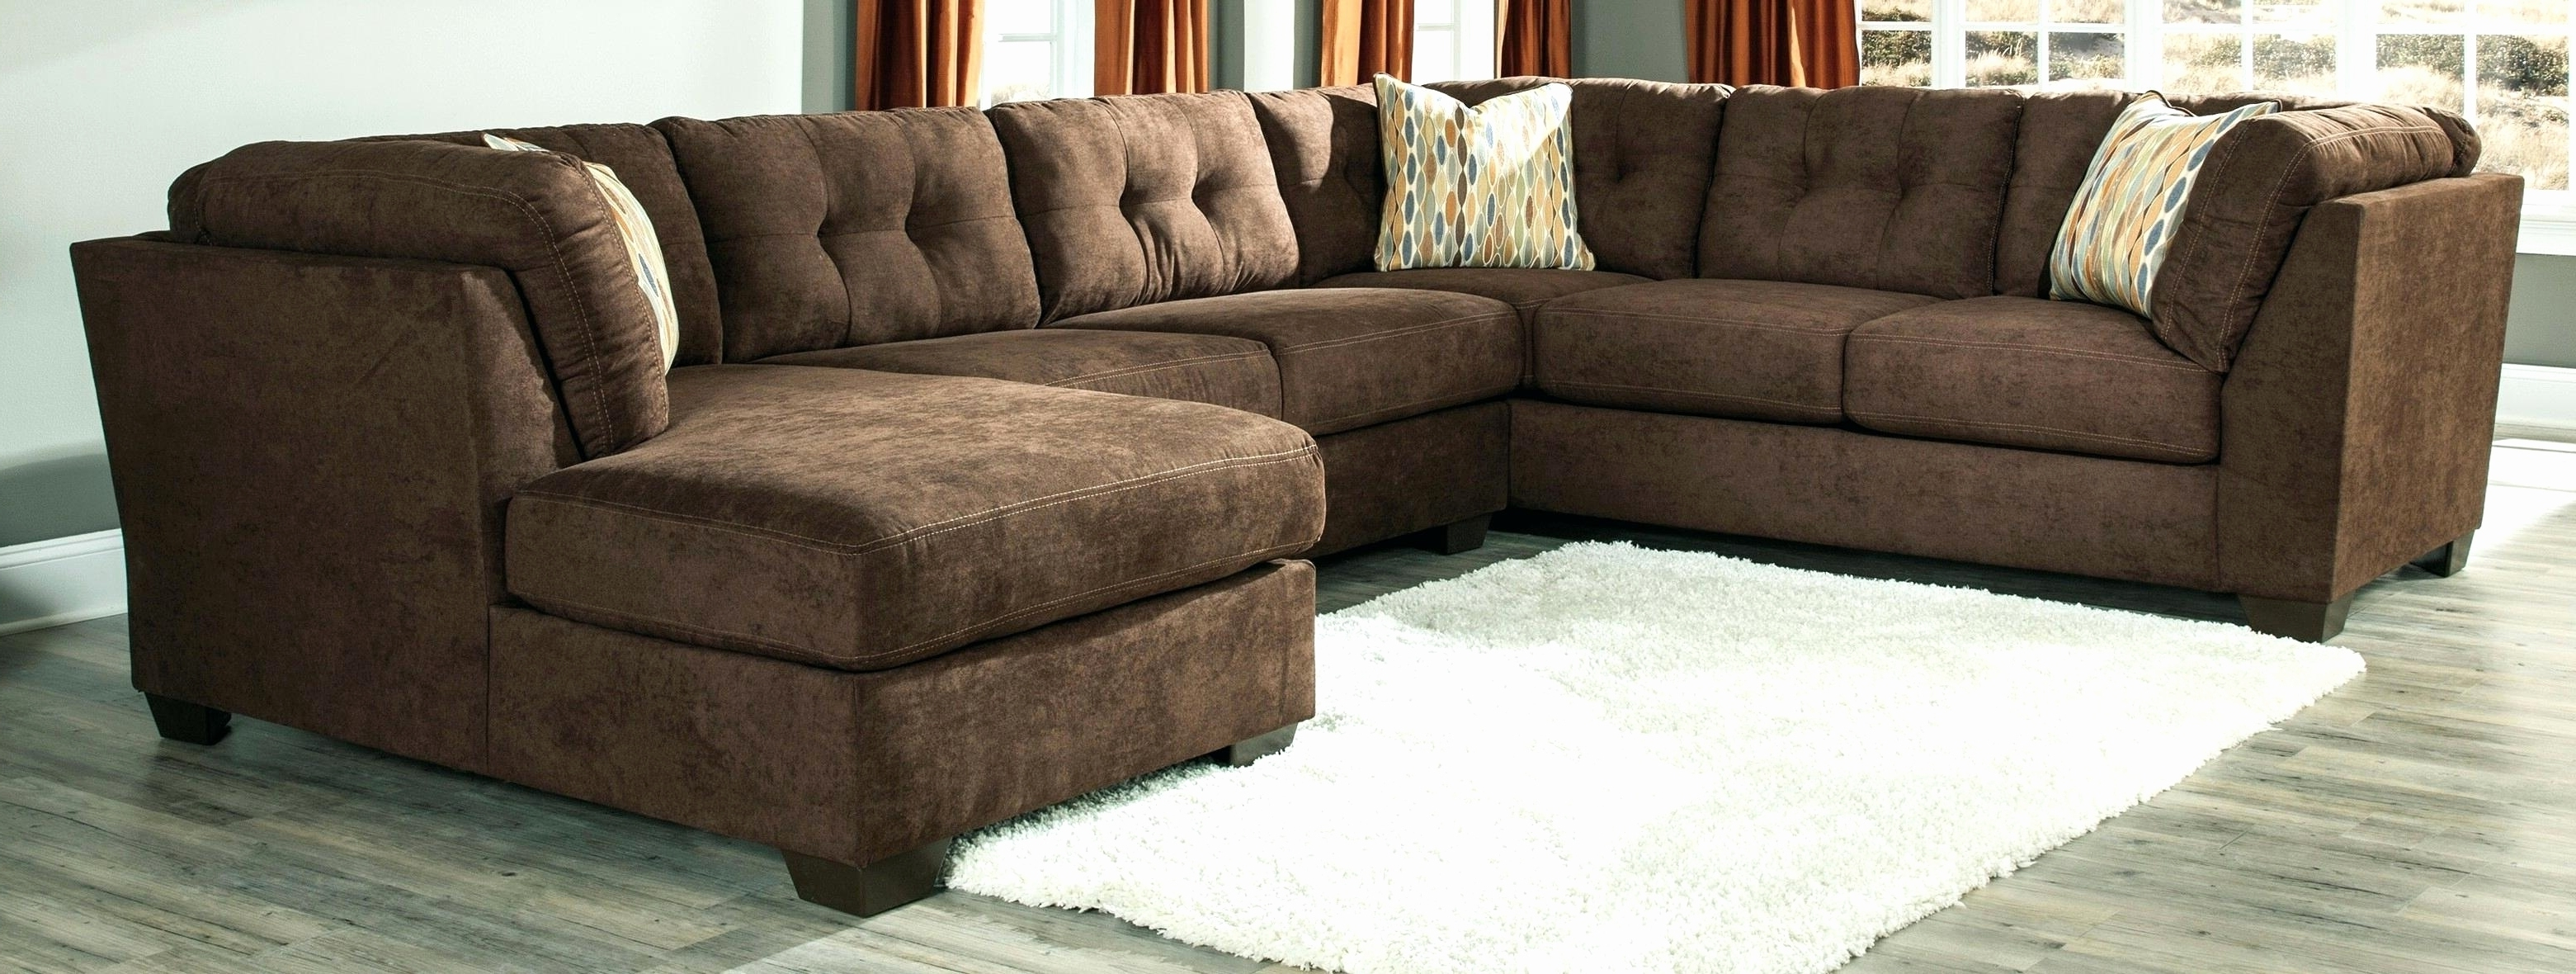 Sectional Sofas At Ashley Furniture Within Most Recent Luxury Ashley Furniture Sofa 2018 – Couches And Sofas Ideas (View 14 of 15)